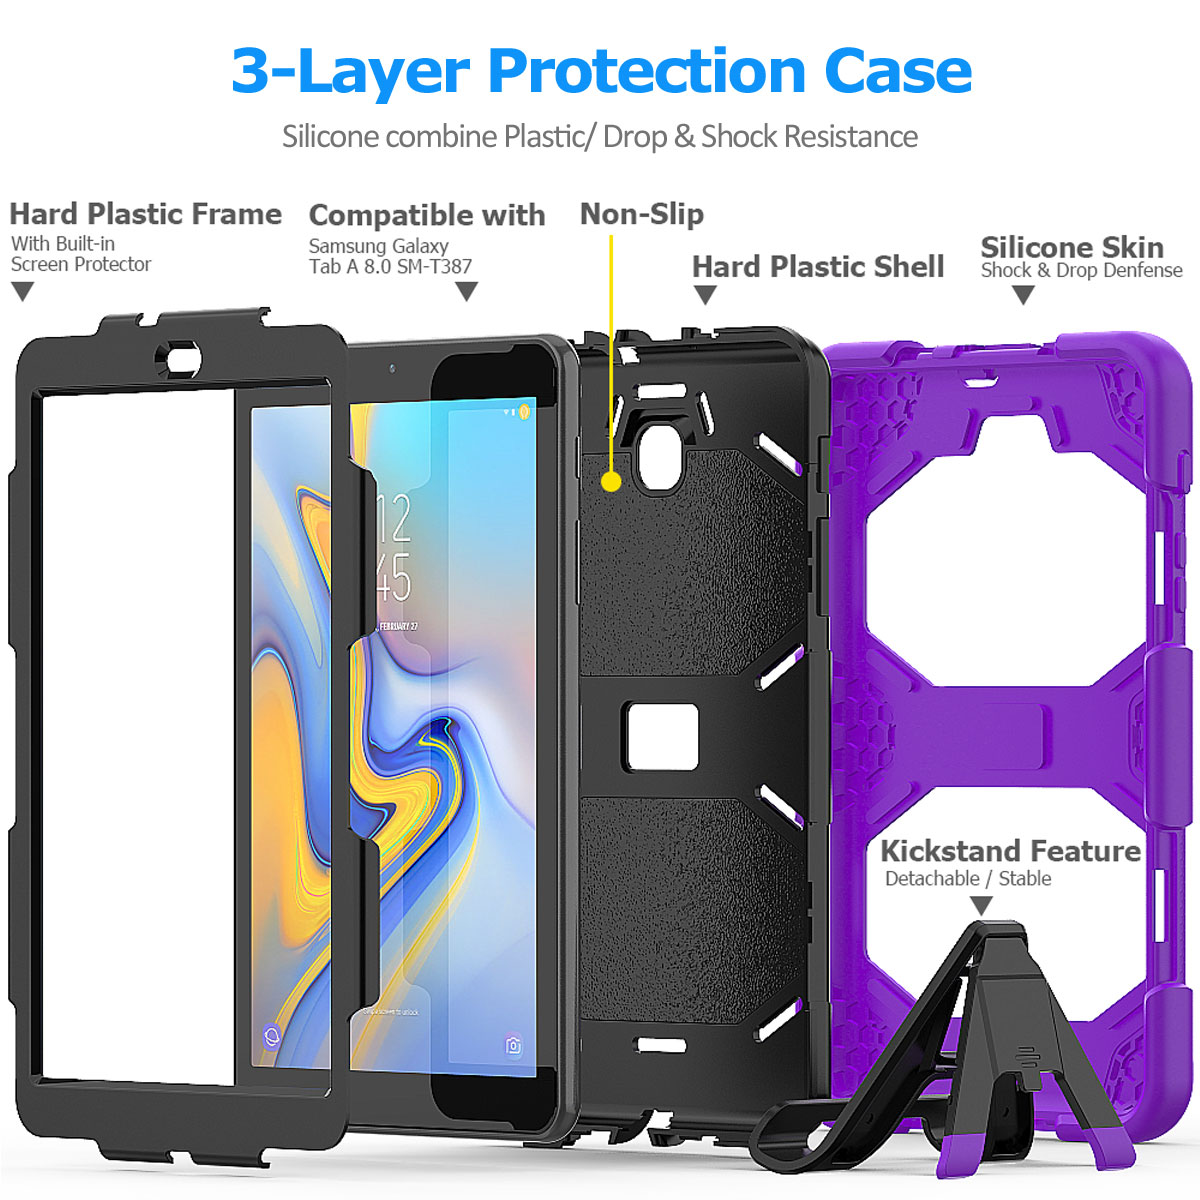 Rugged-Hard-Case-For-Samsung-Galaxy-Tab-A-8-0-2018-SM-T387-with-Screen-Protector thumbnail 28